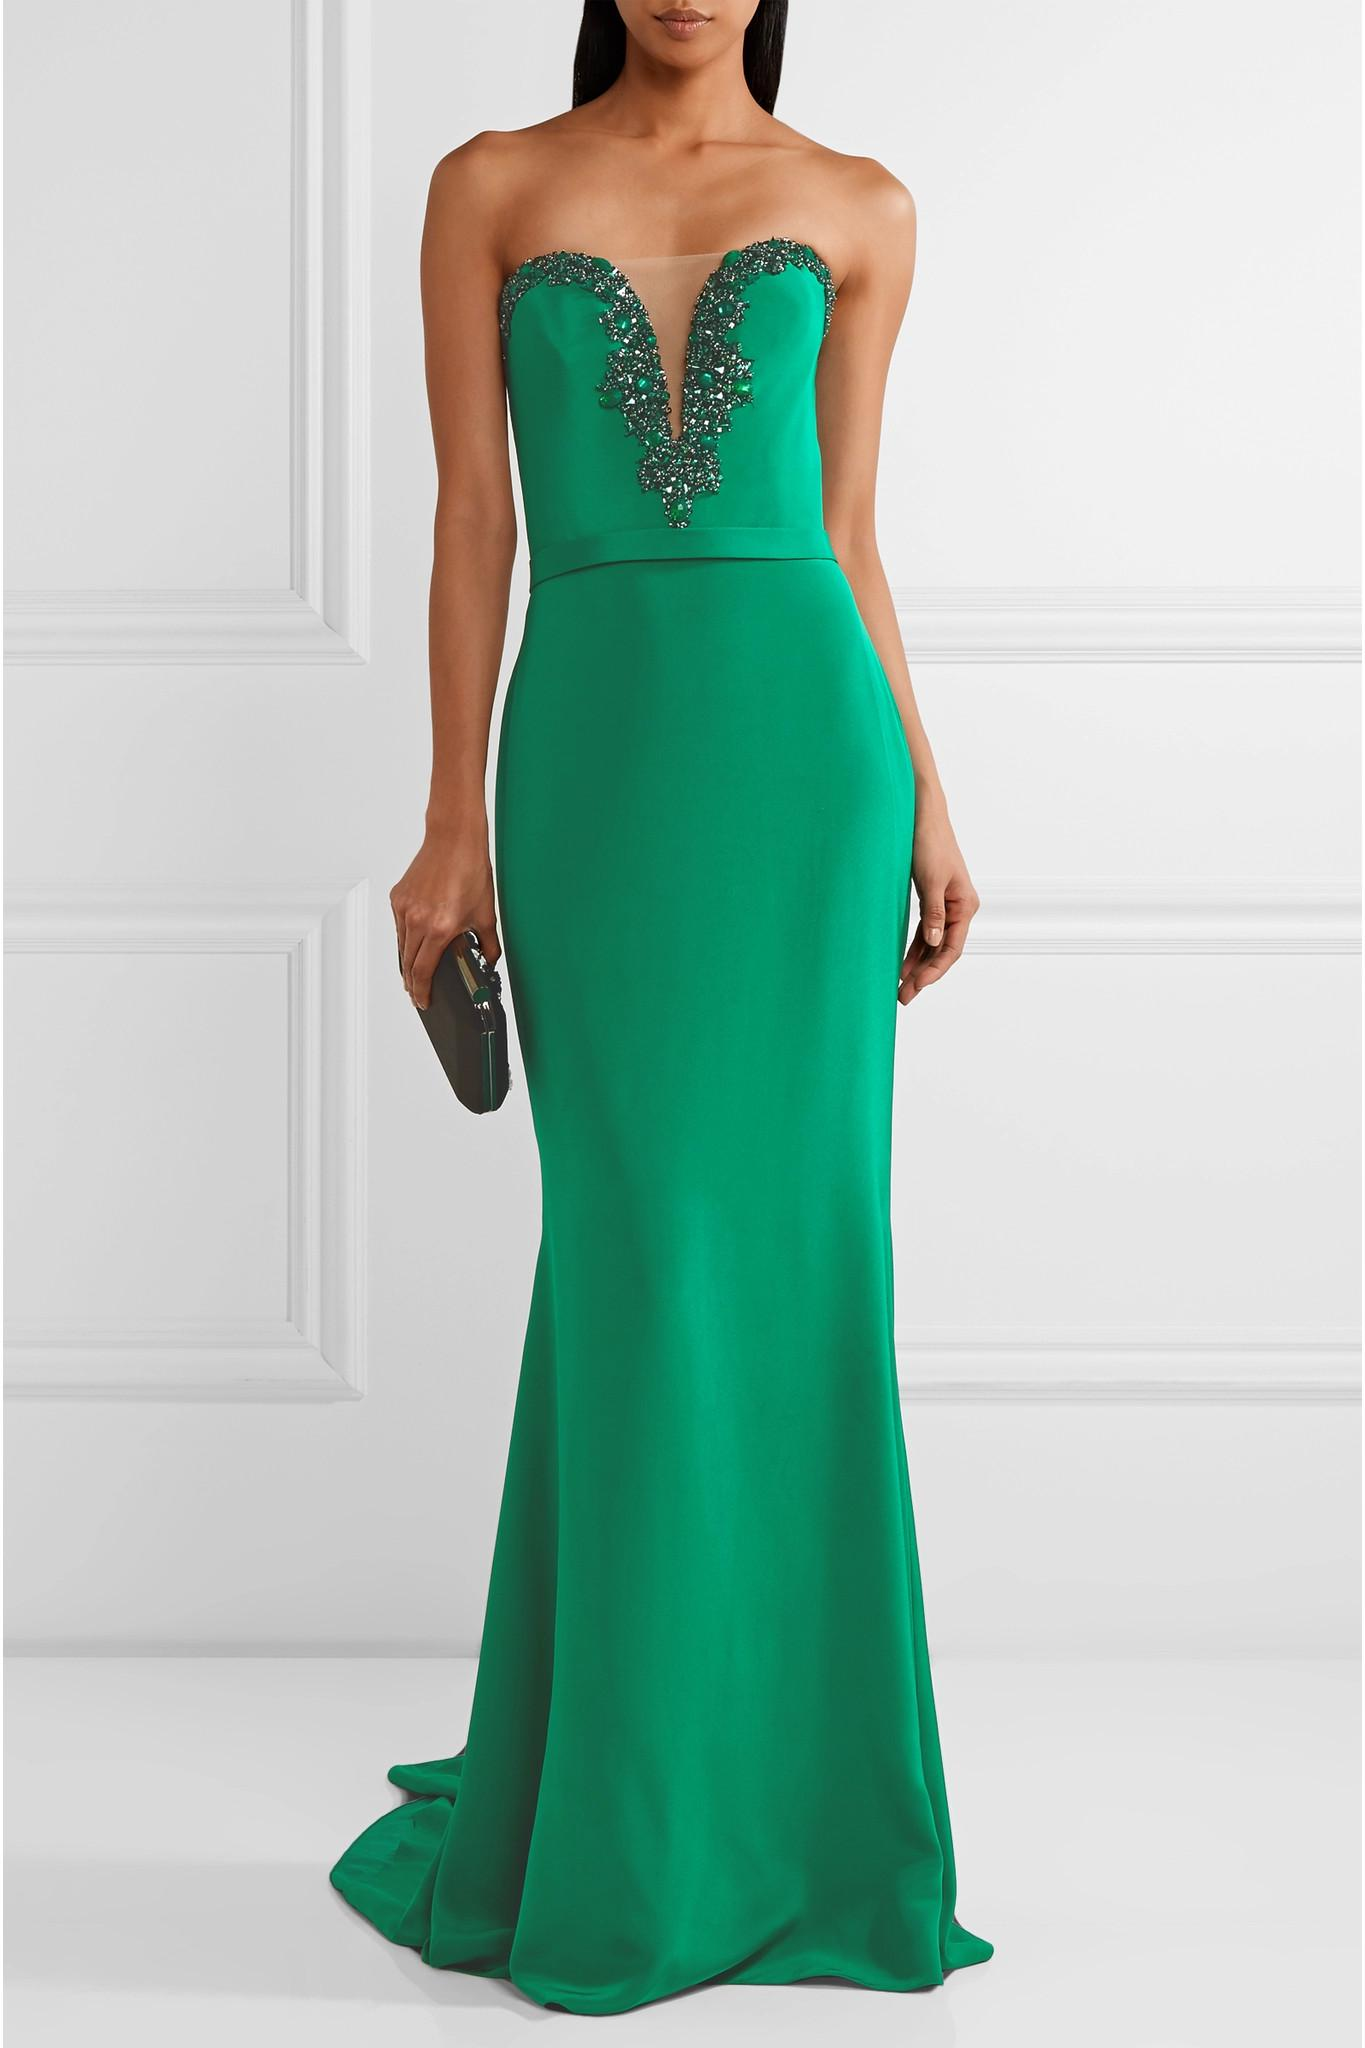 Shopping Online High Quality Tulle-trimmed Embellished Silk Gown - Emerald Reem Acra Free Shipping Sale Online Clearance Explore Sast Sale Online DM1krwNO